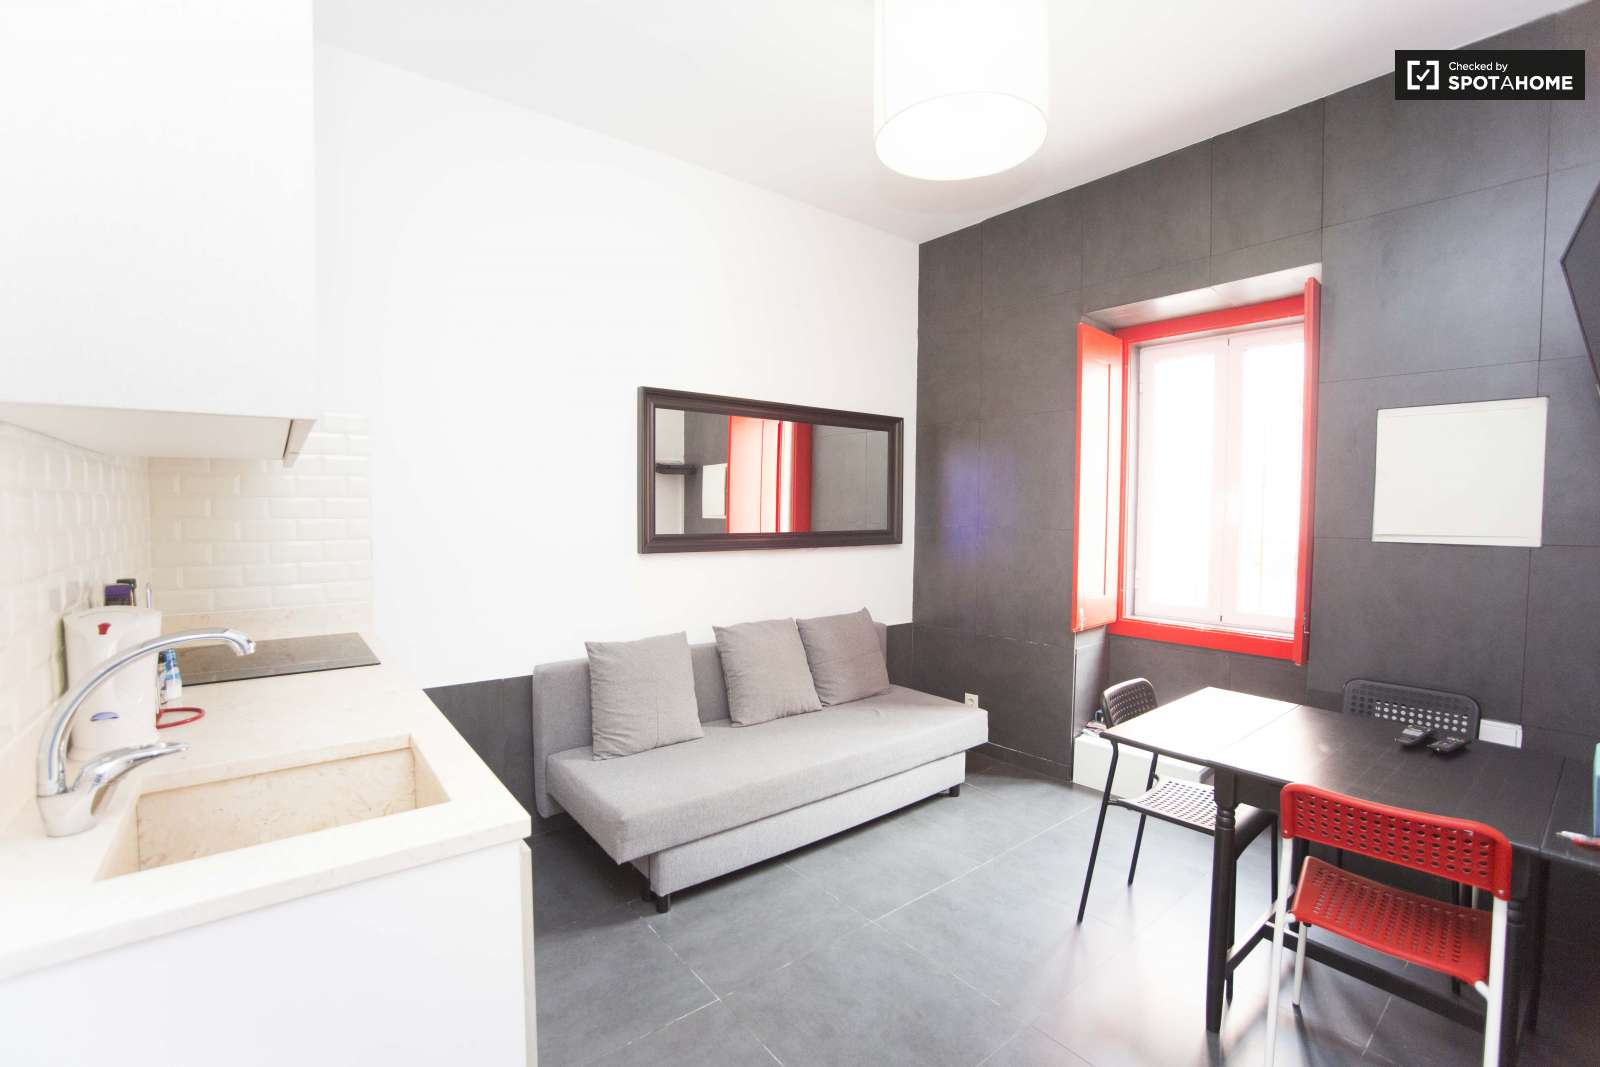 Minimalist 1 Bedroom Apartment For Rent Close To The